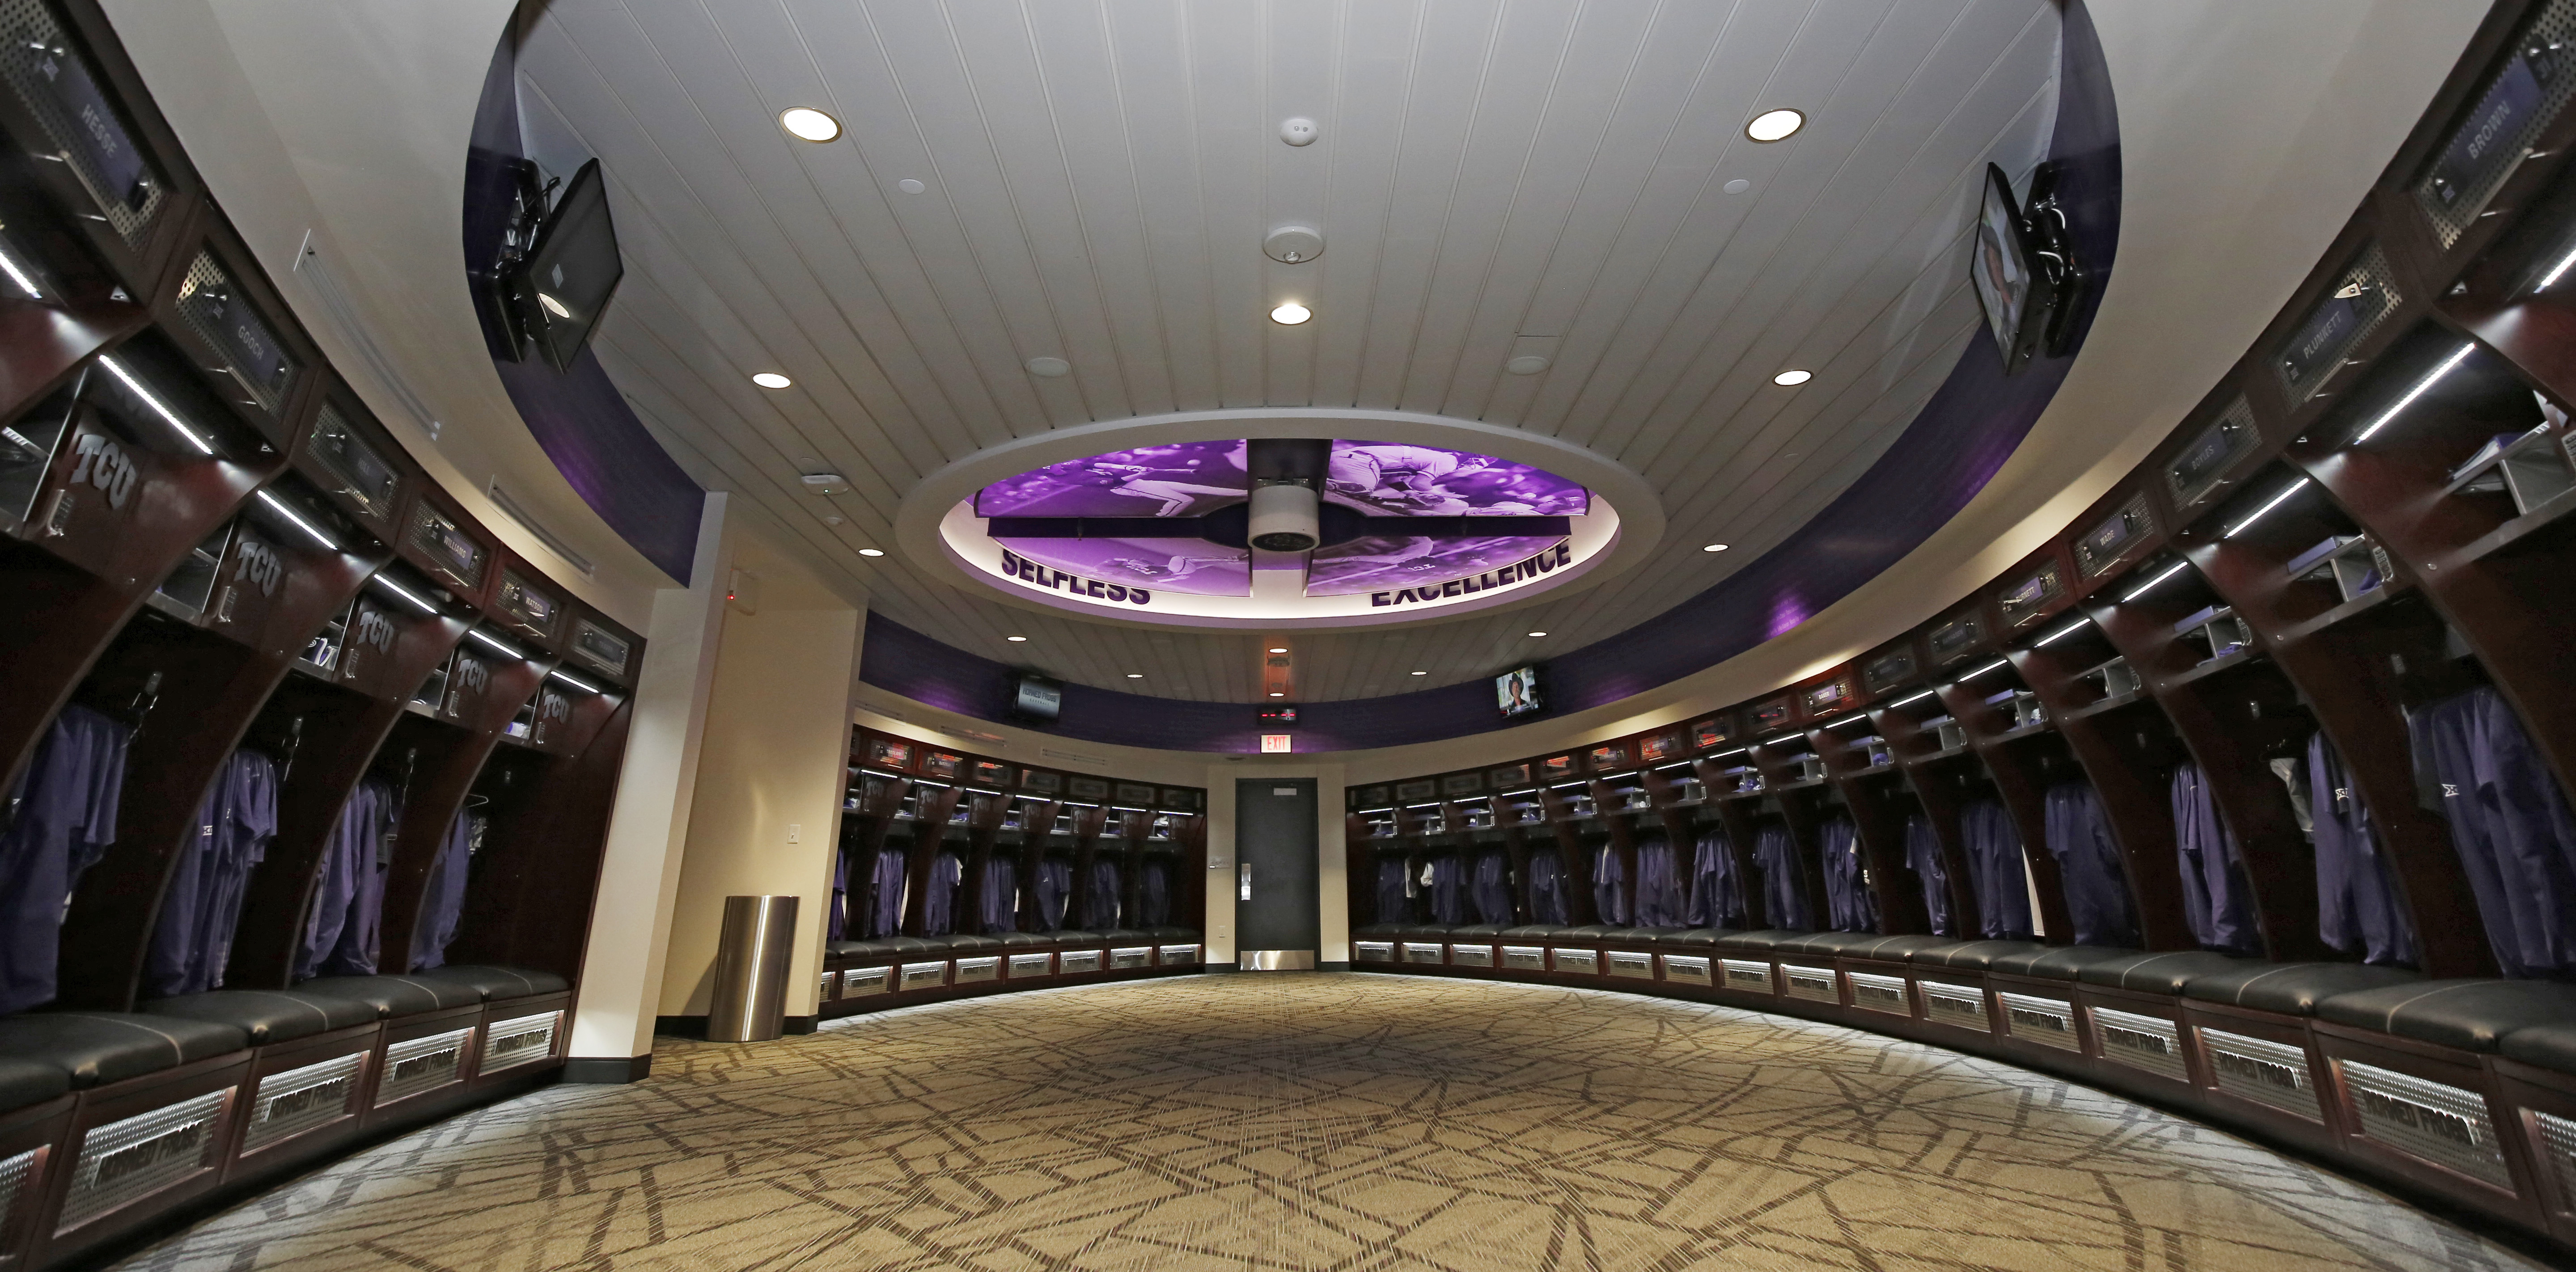 College Sports See Inside TCU Baseballs New Facilities At Lupton Stadium Plus Players Reaction To The Reveal